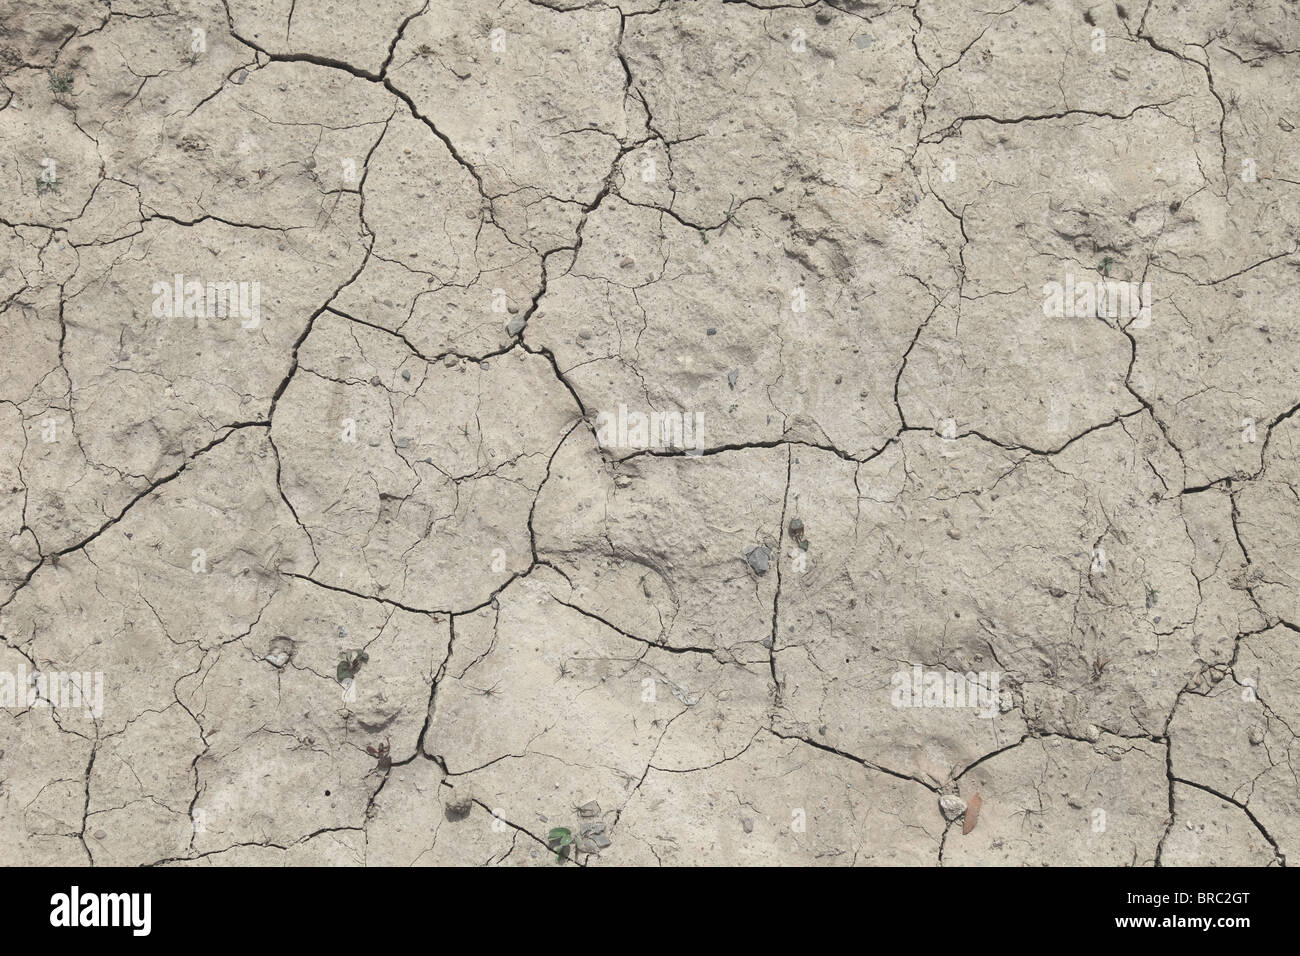 Background texture of a flawed dried out ground. - Stock Image